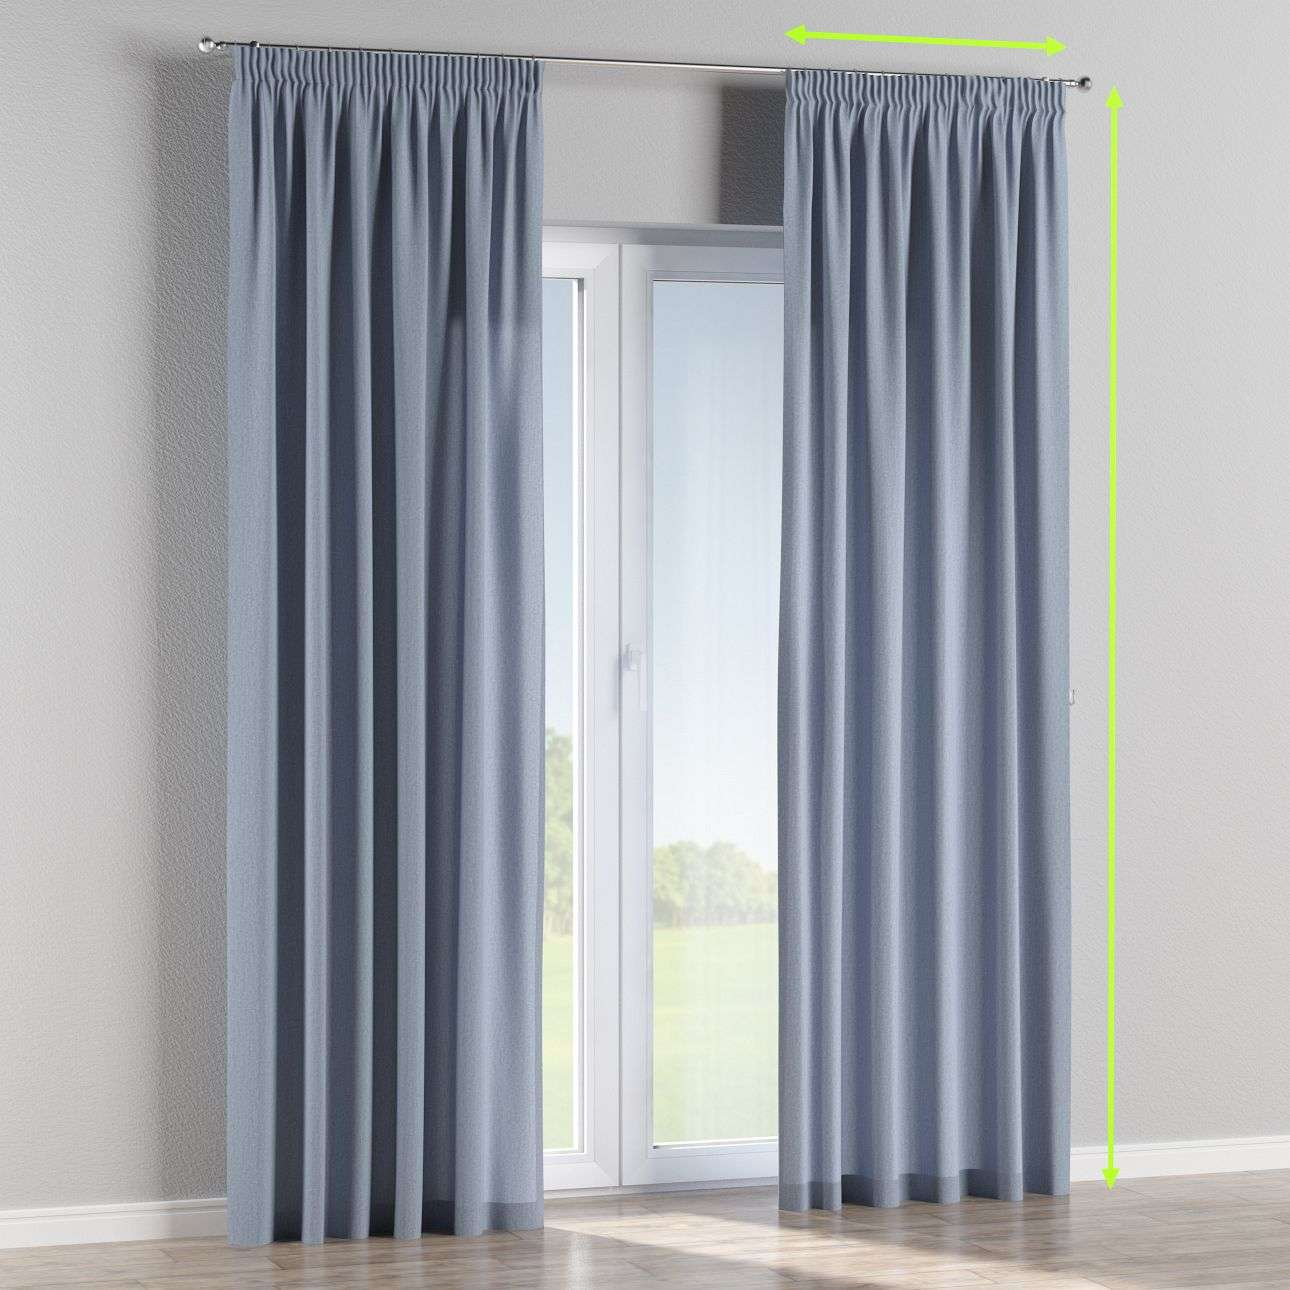 Pencil pleat lined curtains in collection Chenille, fabric: 702-13